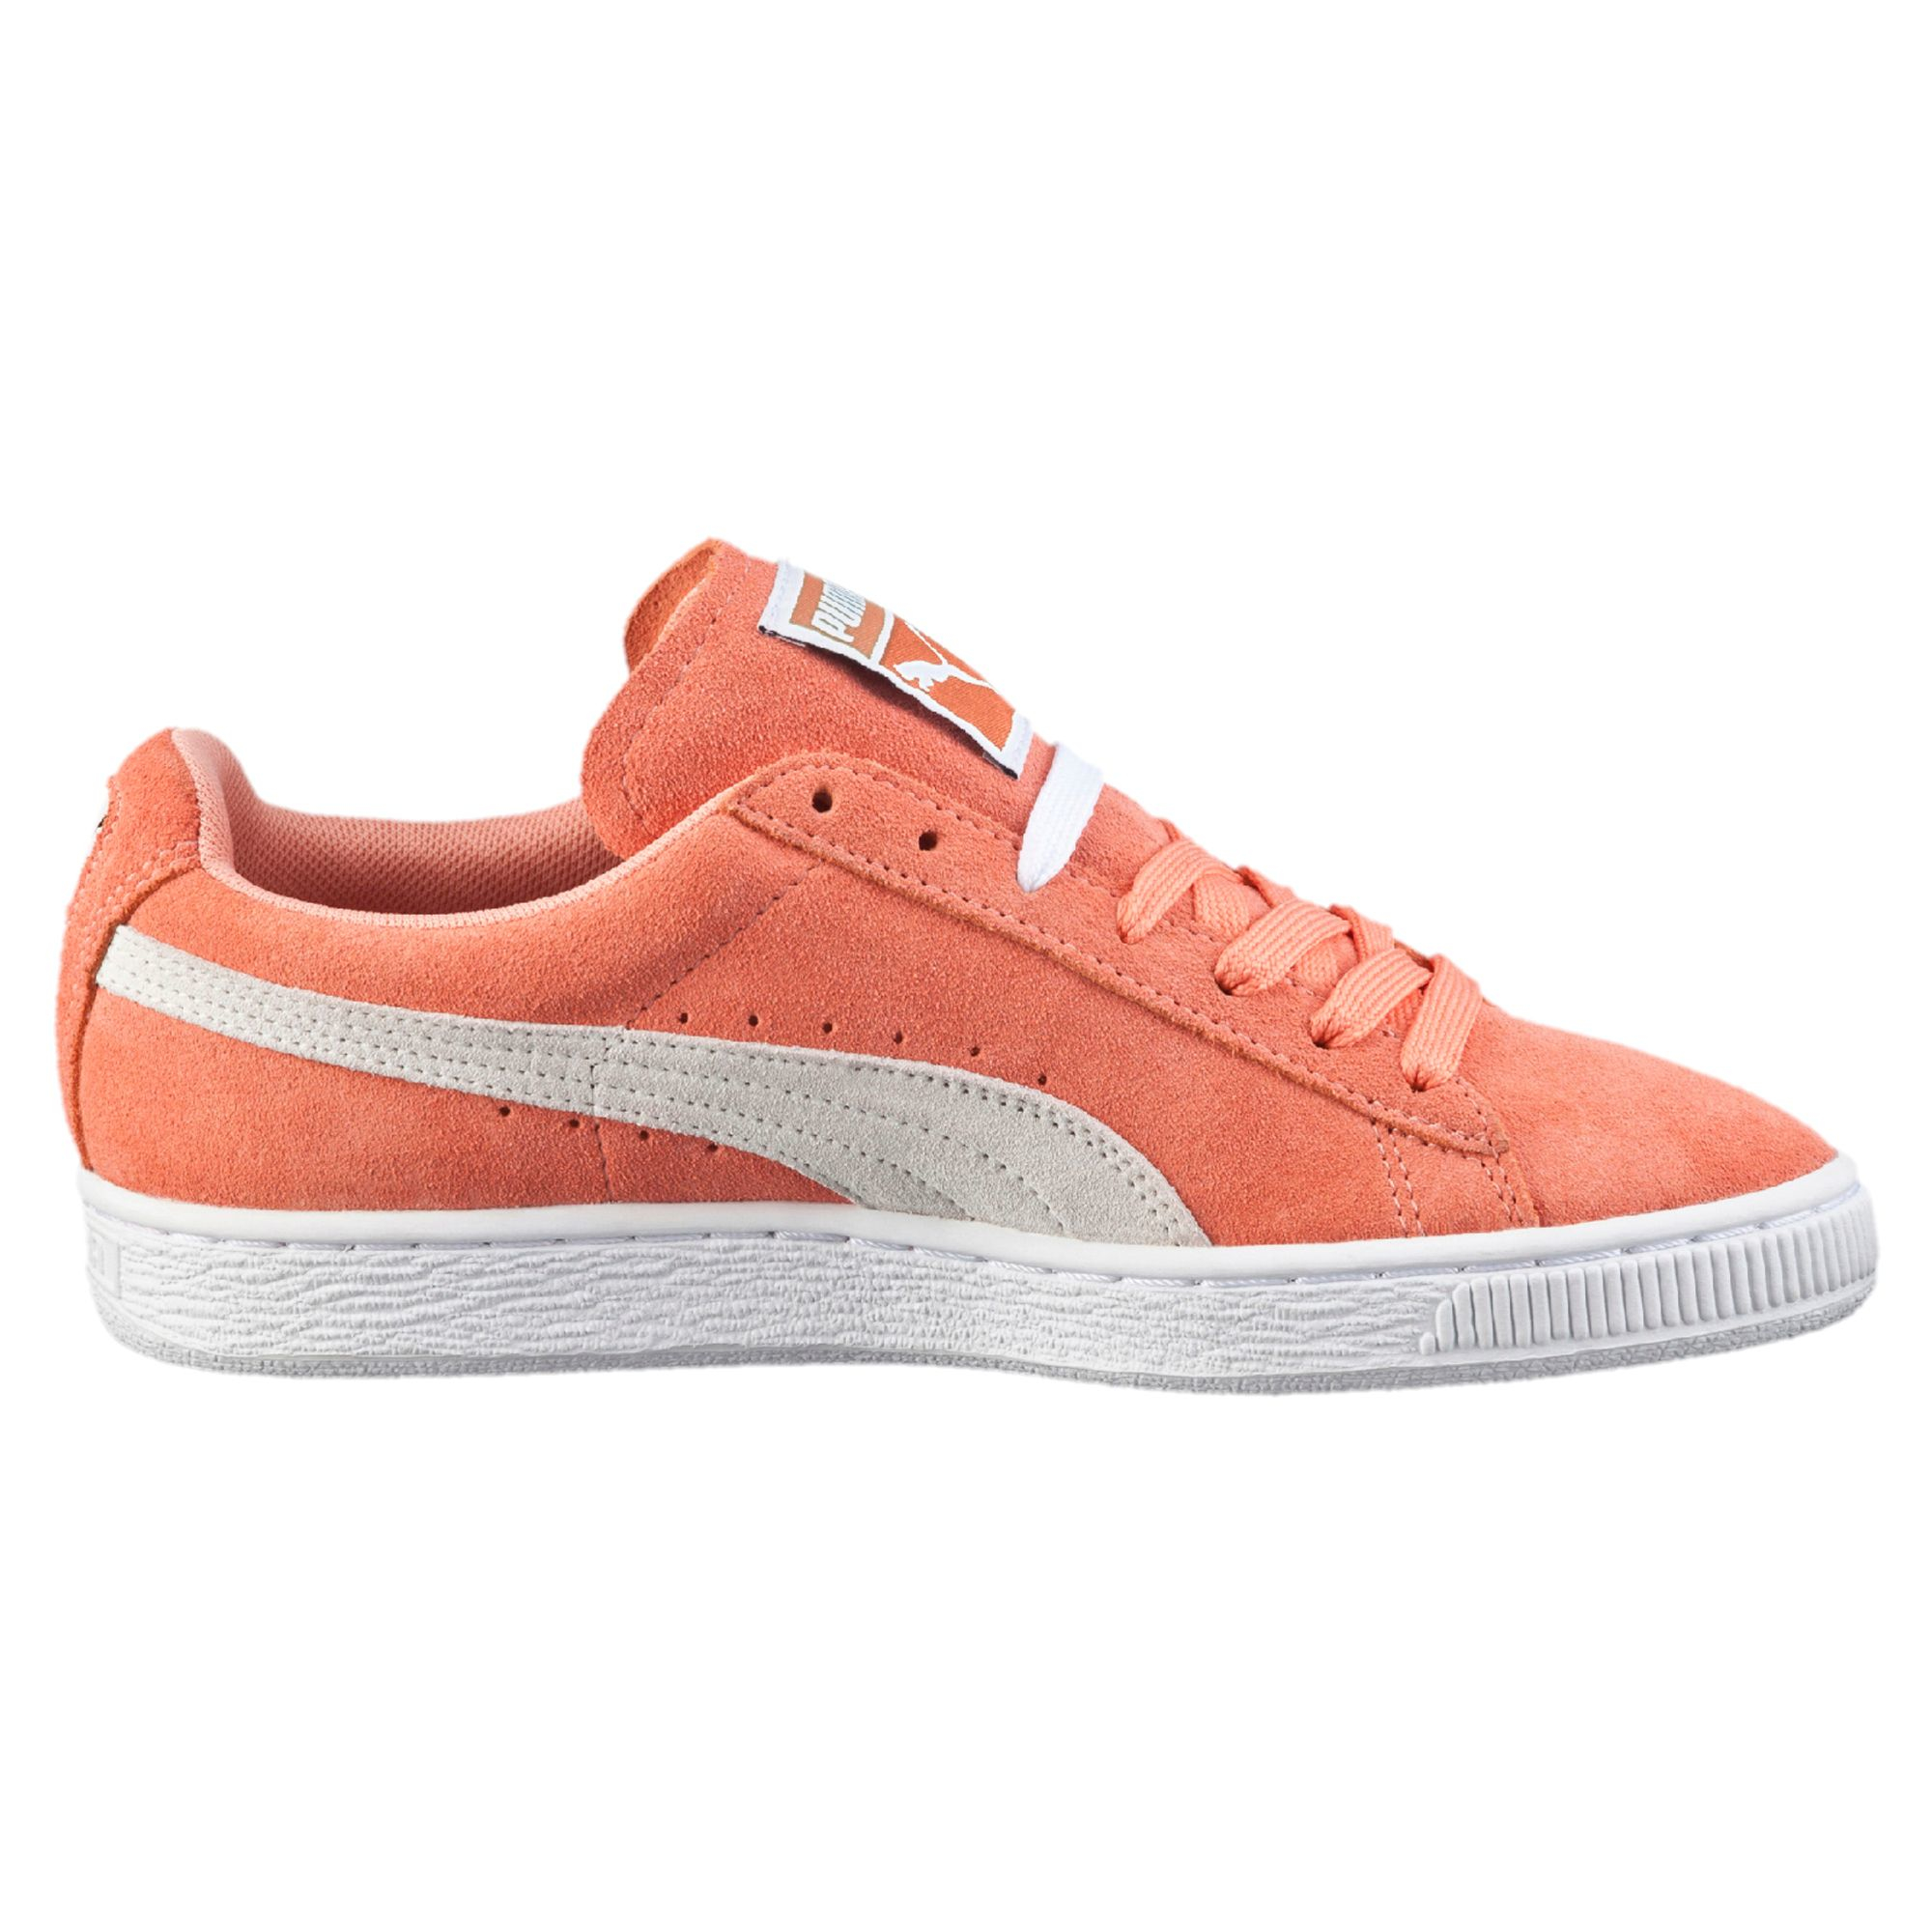 puma suede classic women 39 s sneakers in pink lyst. Black Bedroom Furniture Sets. Home Design Ideas